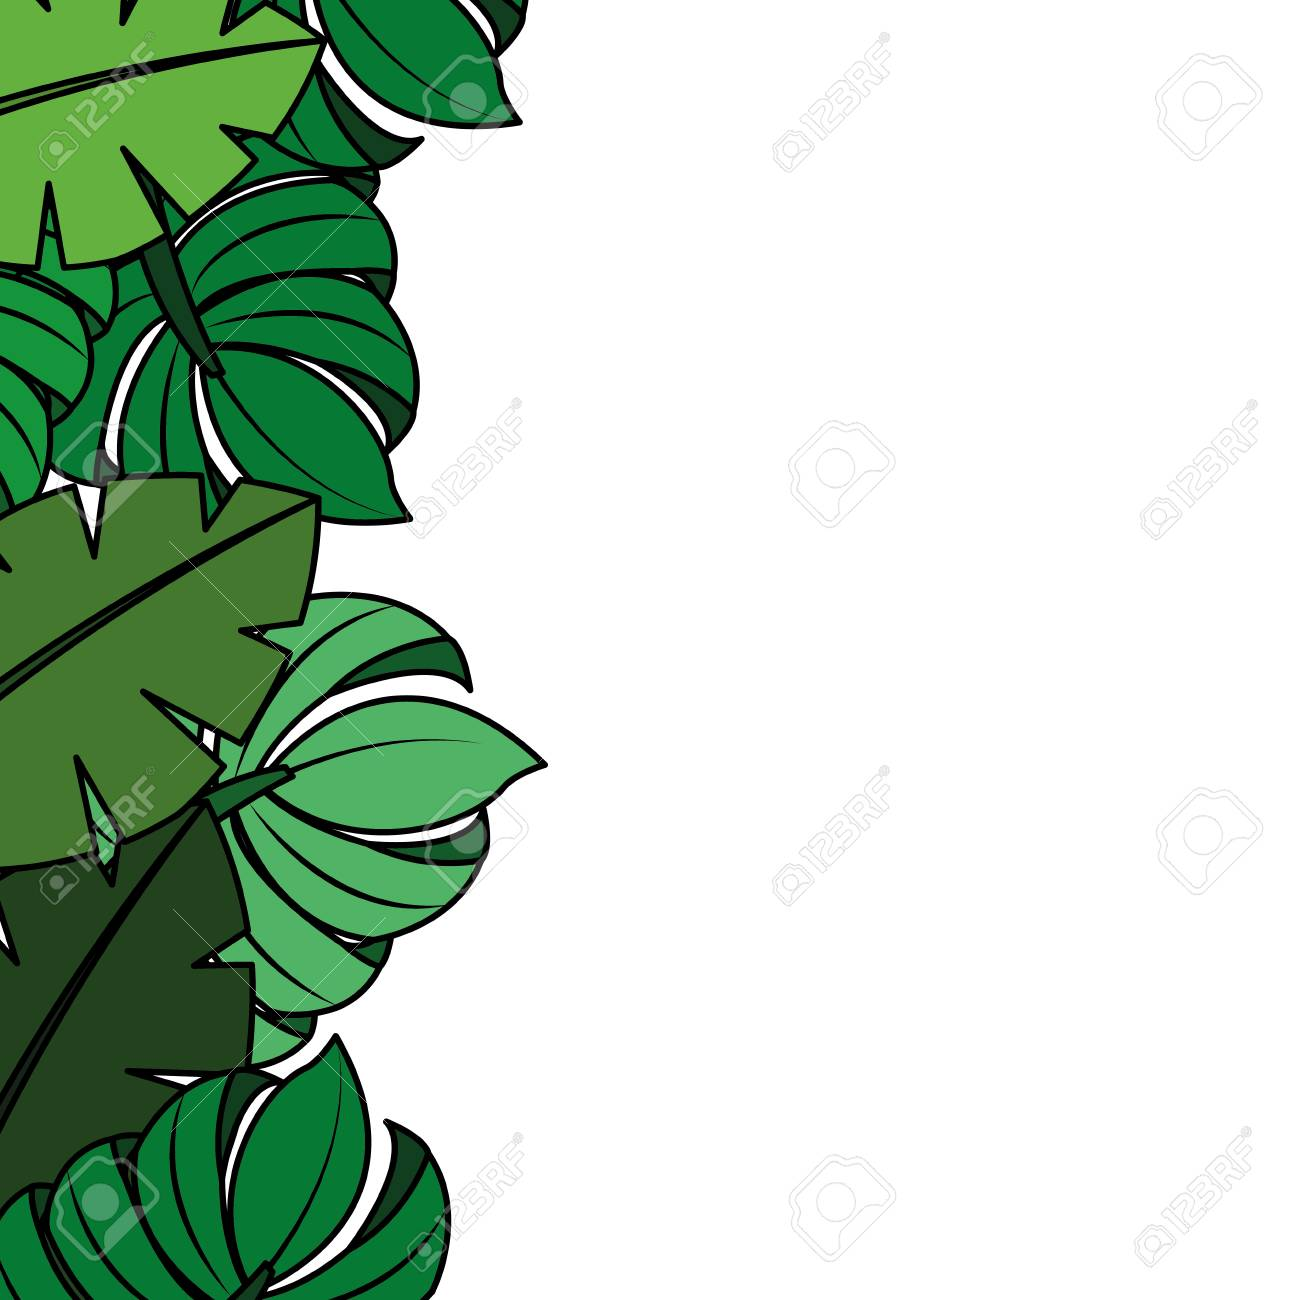 Tropical Leaves Palm Tree Border Decoration Vector Illustration Royalty Free Cliparts Vectors And Stock Illustration Image 90800811 Choose from 40+ tropical leaves border graphic resources and download in the form of png, eps, ai or psd. tropical leaves palm tree border decoration vector illustration